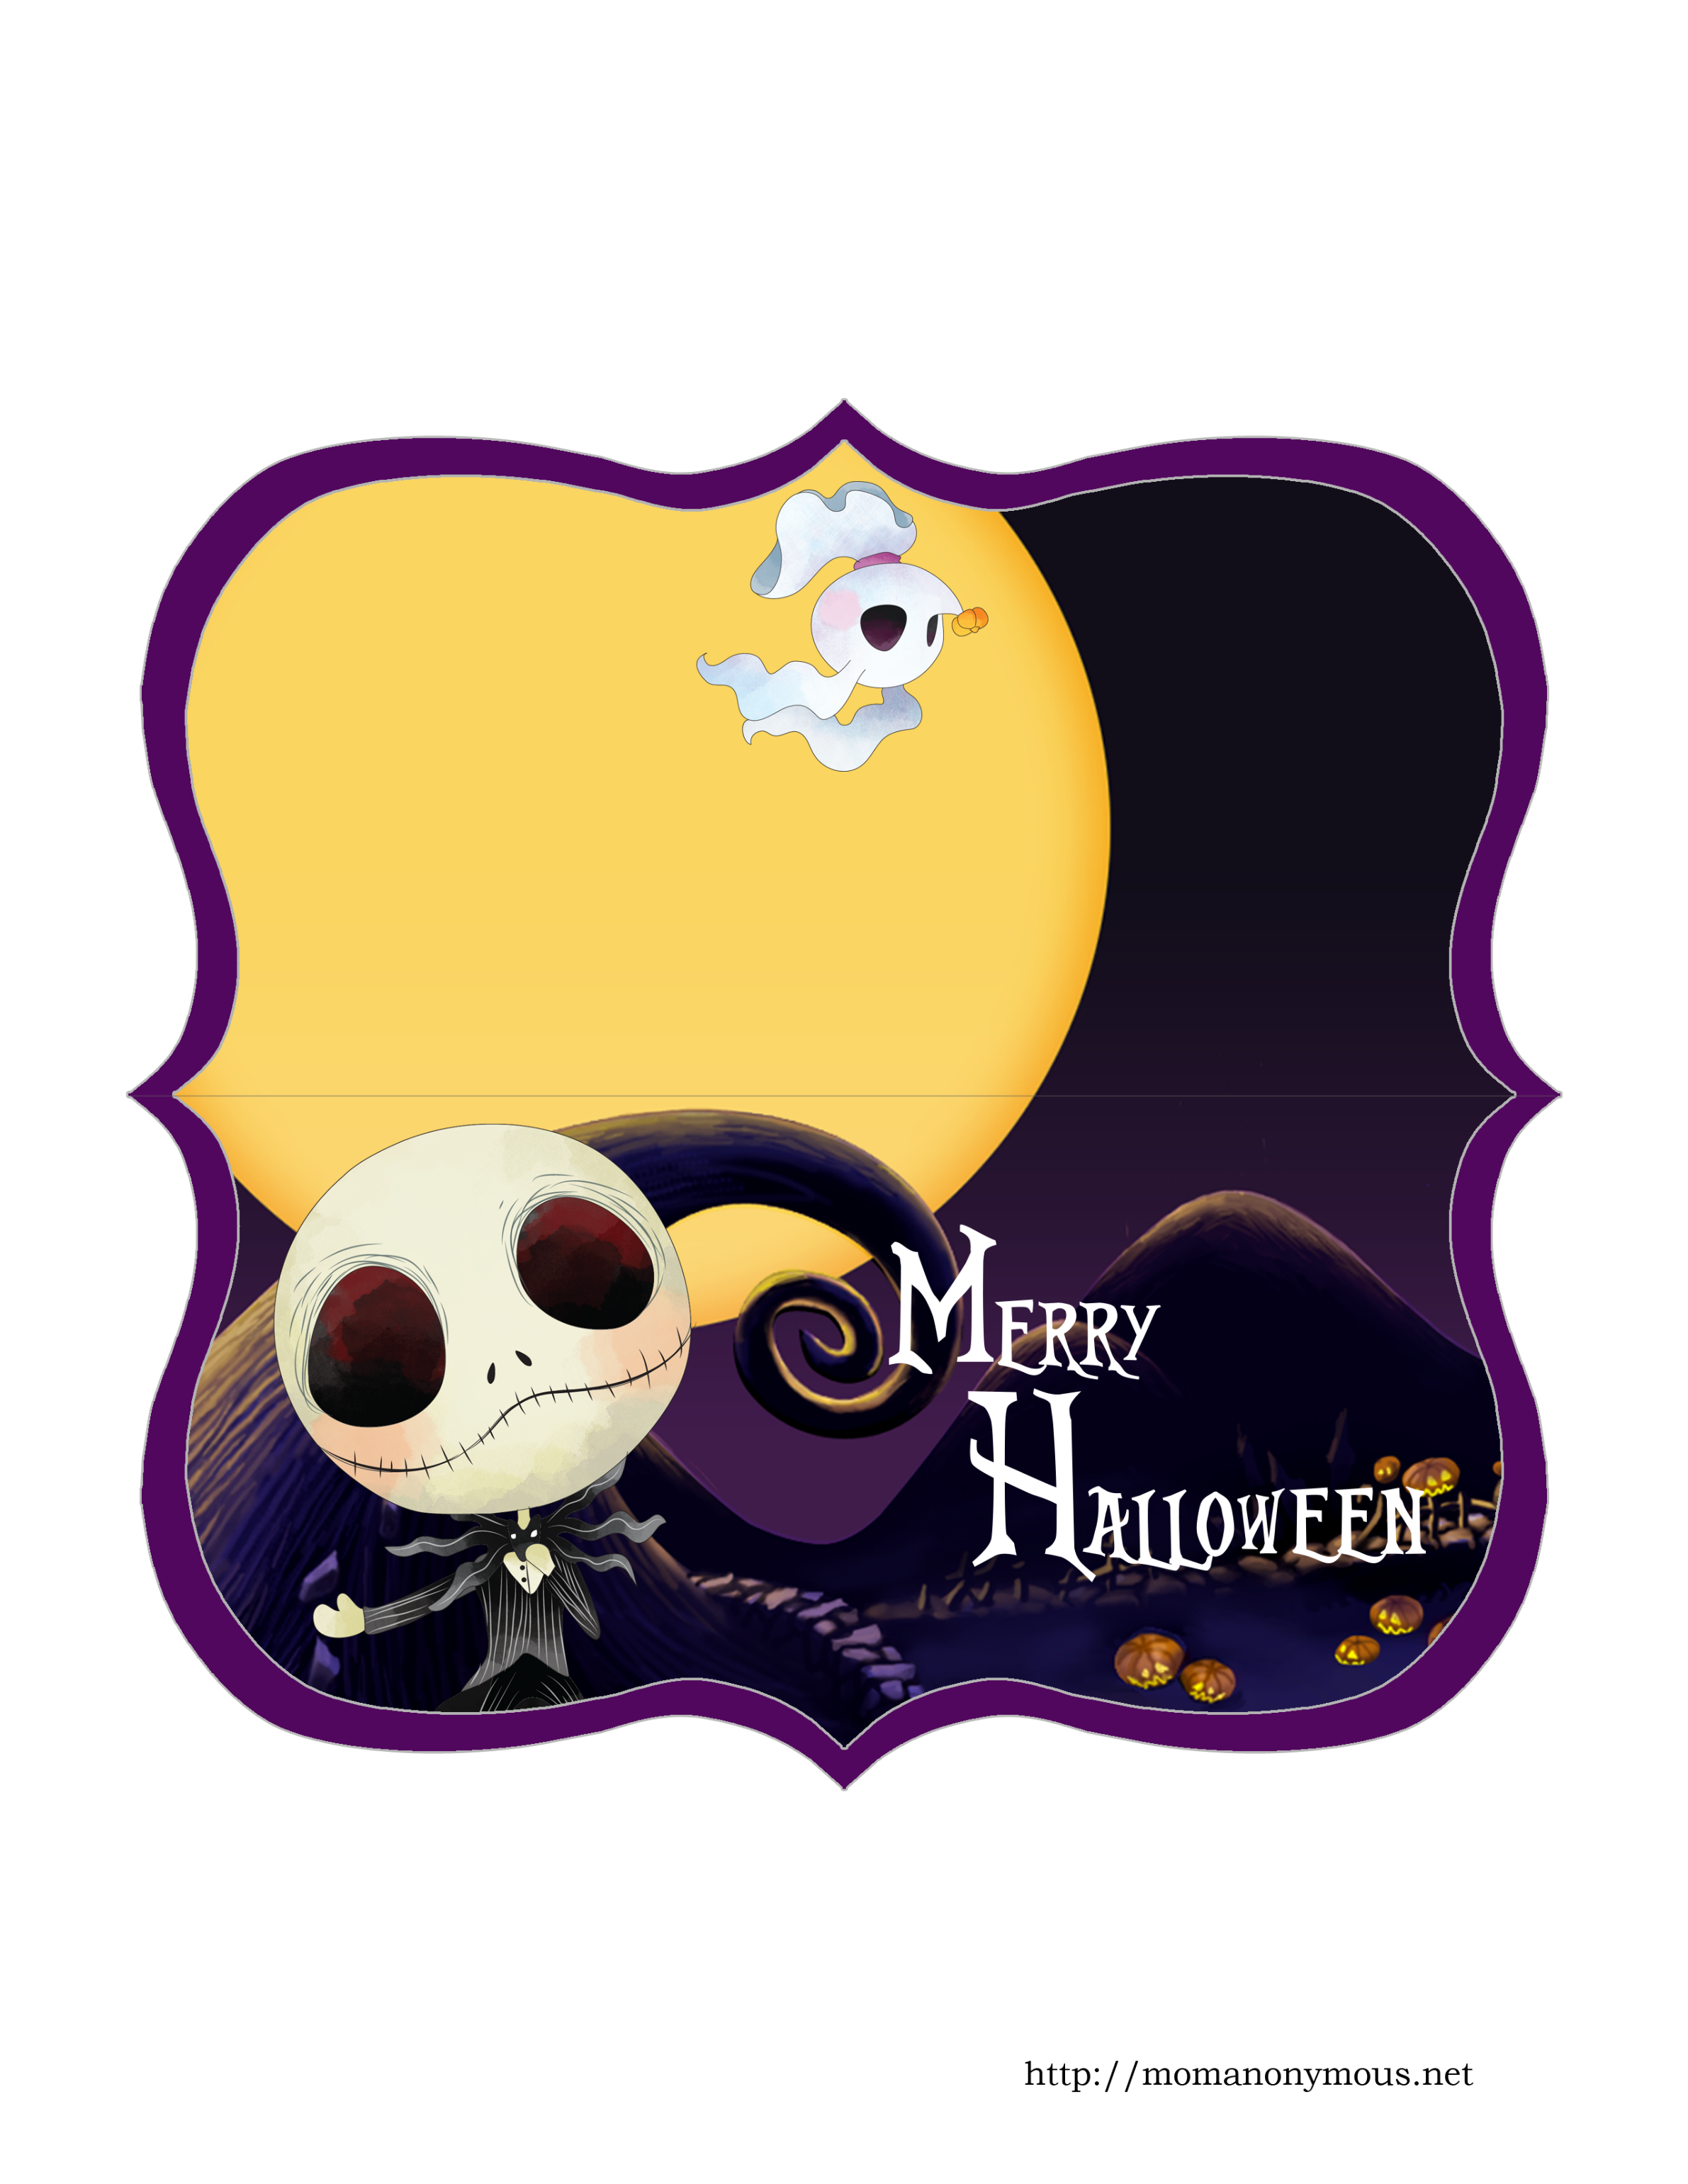 Nightmare before christmas clipart free png free library EXCLUSIVE and COMPLIMENTARY The Nightmare Before Christmas Printable ... png free library